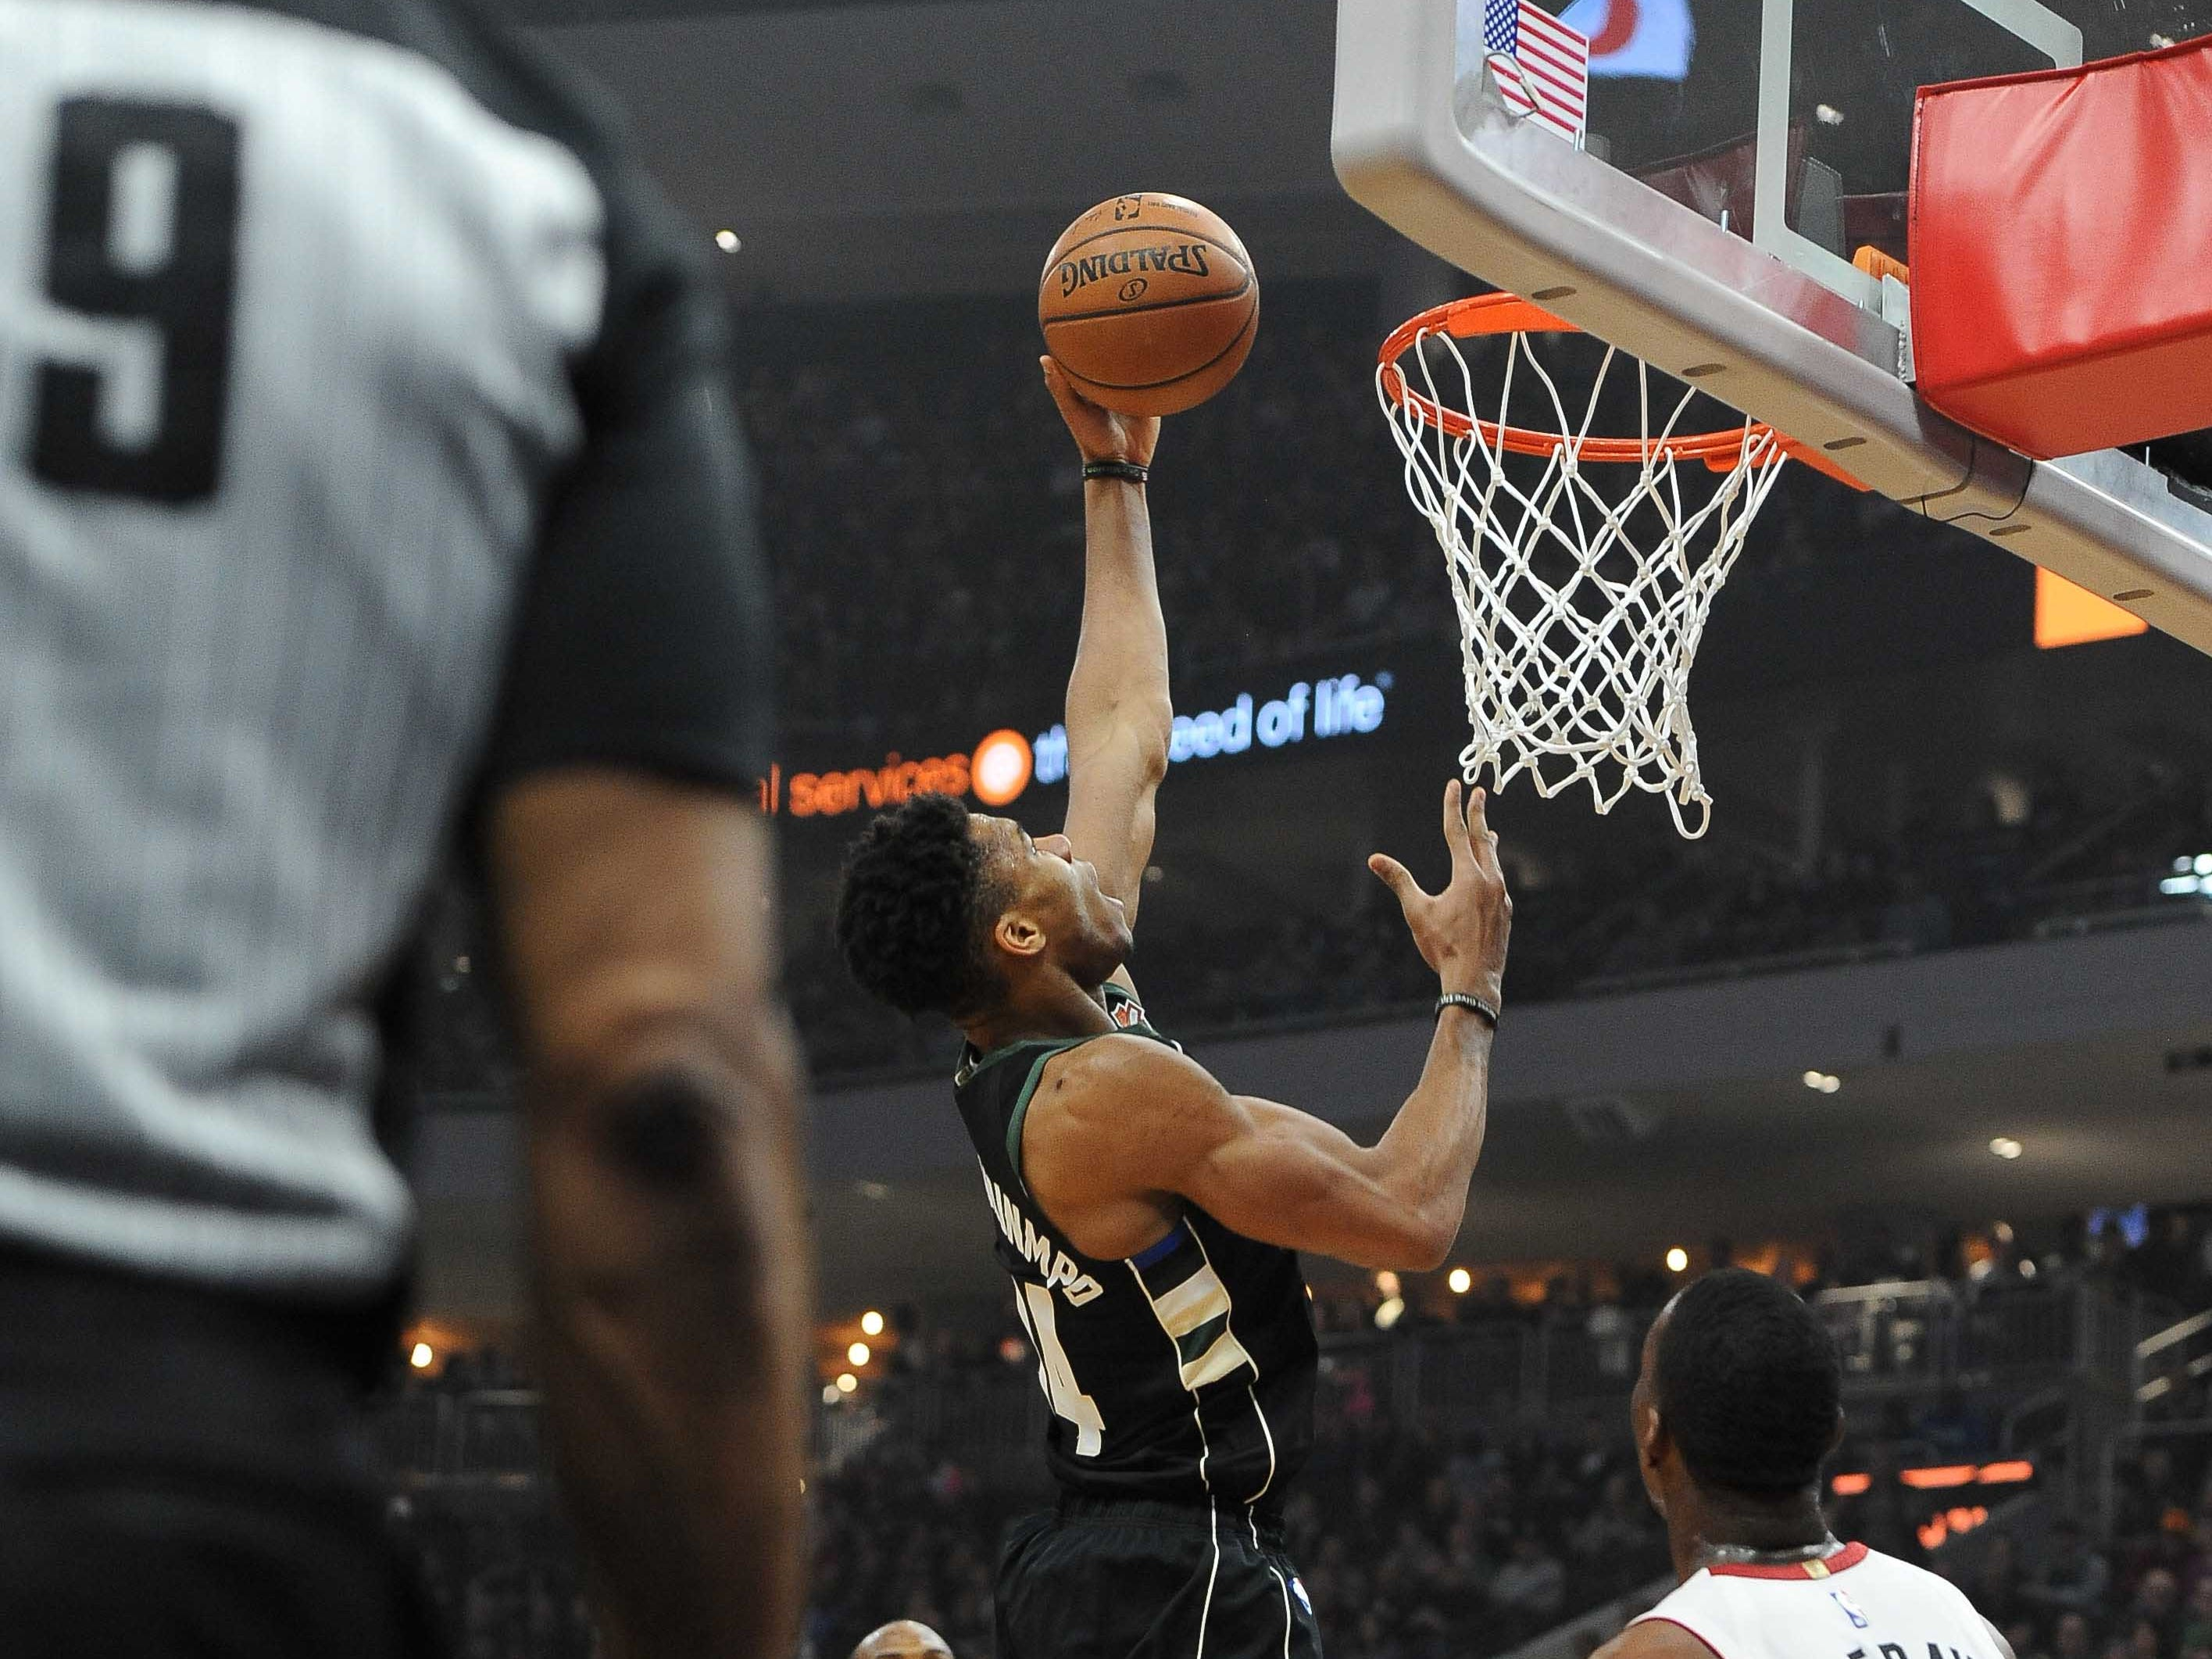 Giannnis Antetokounmpo of the Bucks goes in for a score against the Heat during the first quarter.